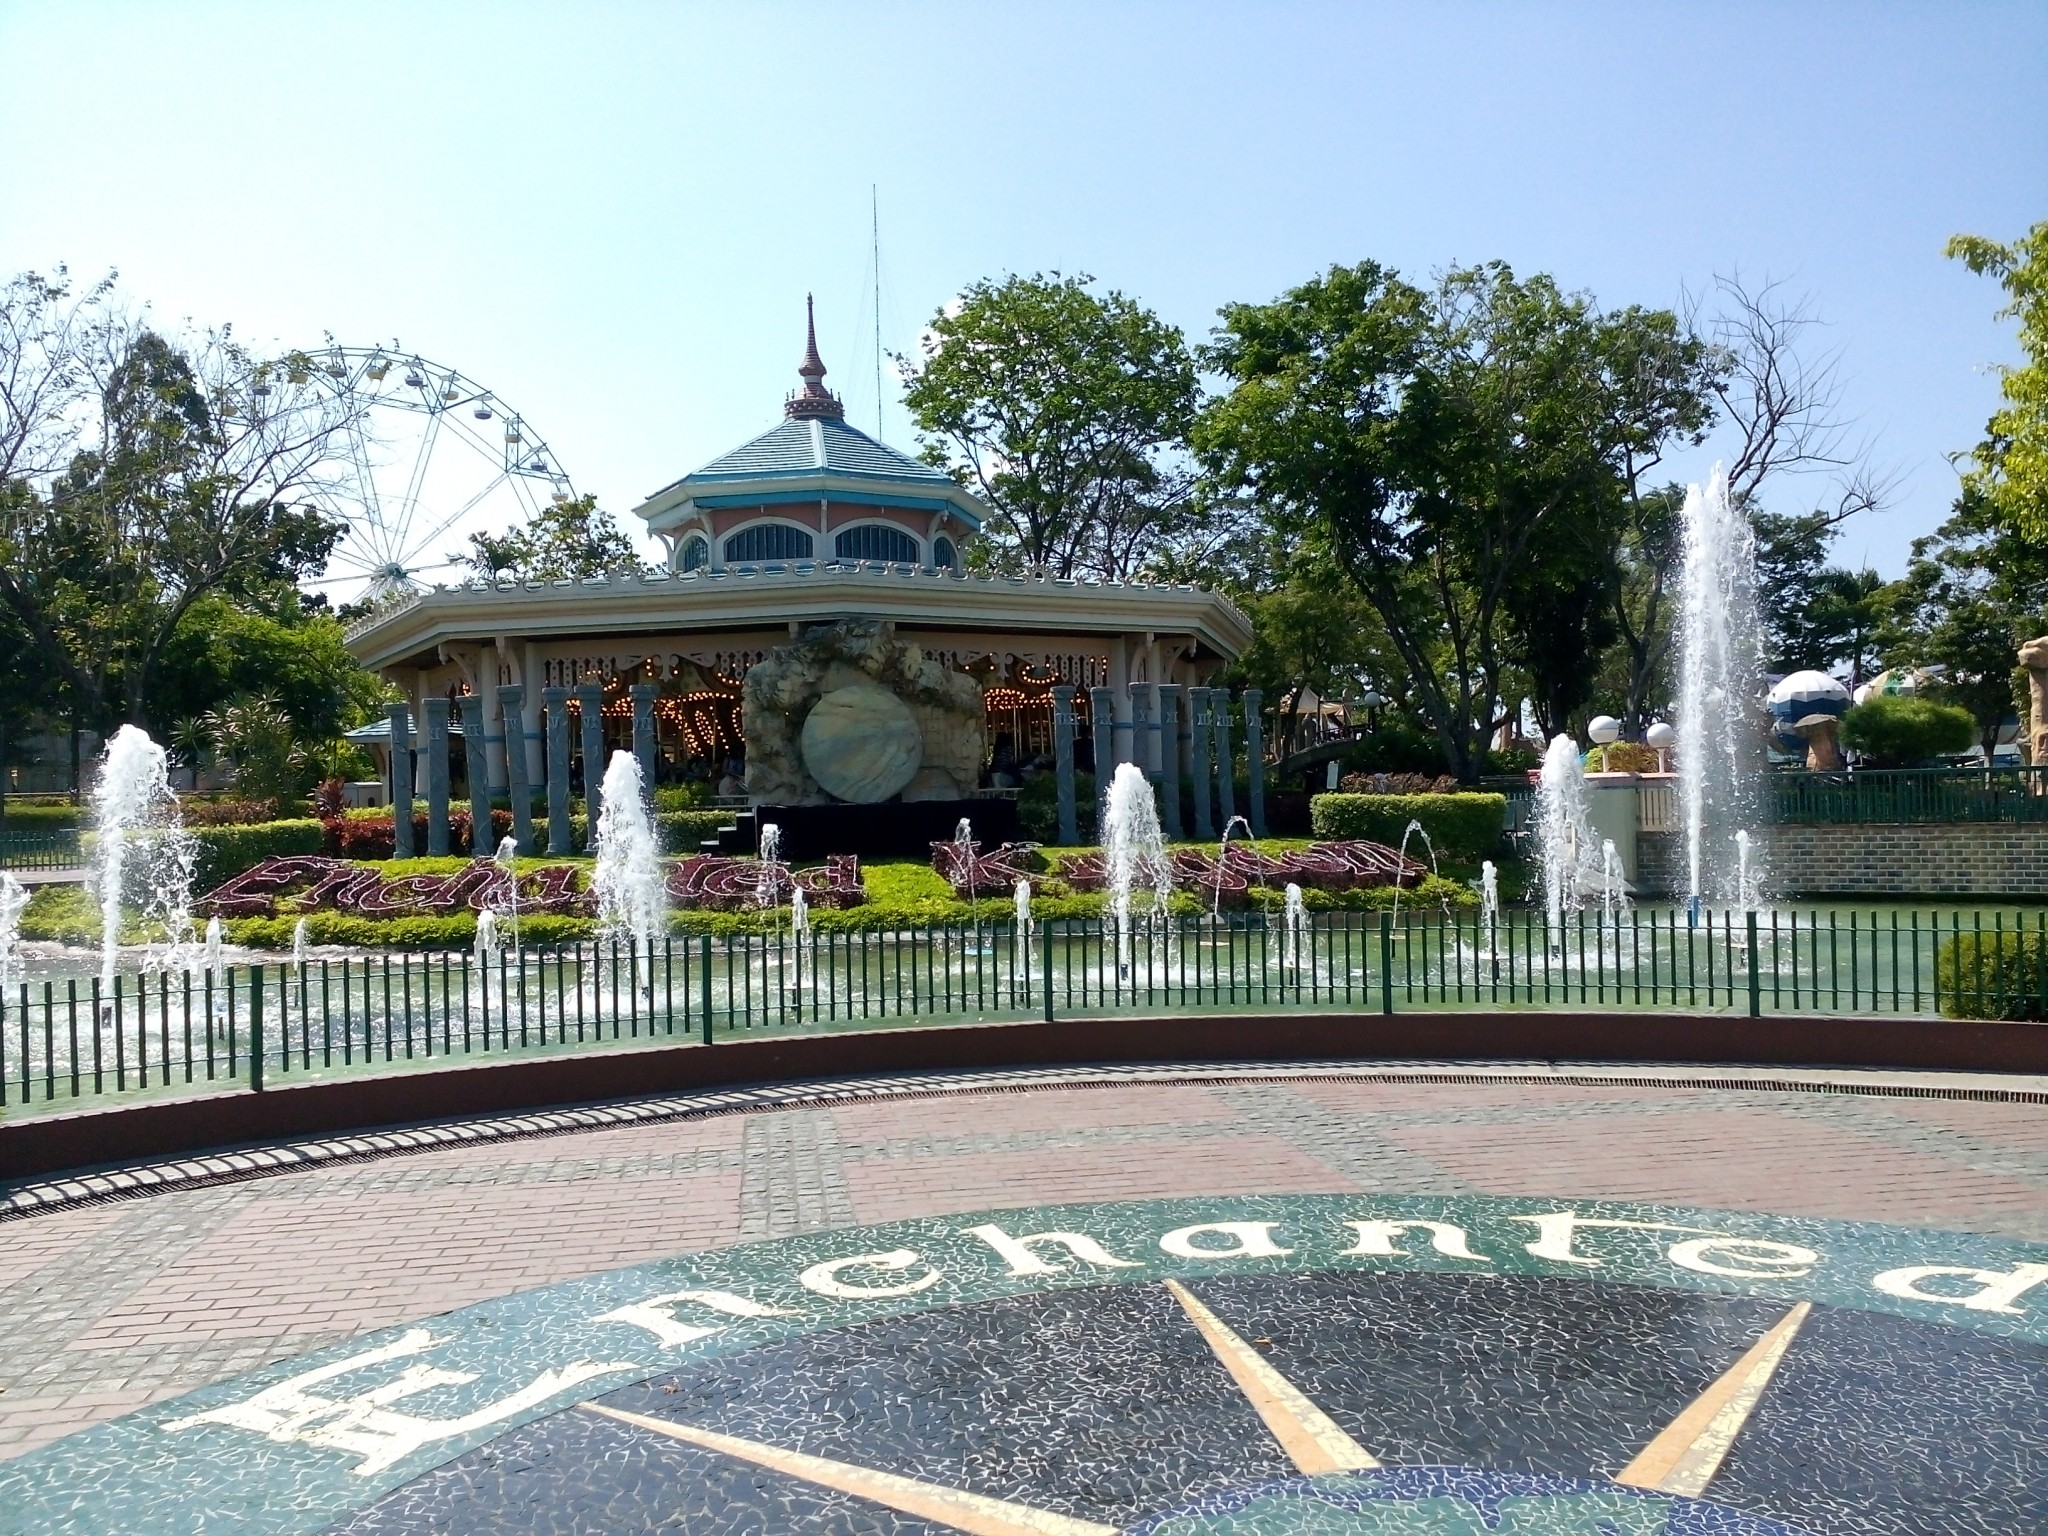 Enchanted Kingdom, Laguna: Revisiting A Chilhood Fear